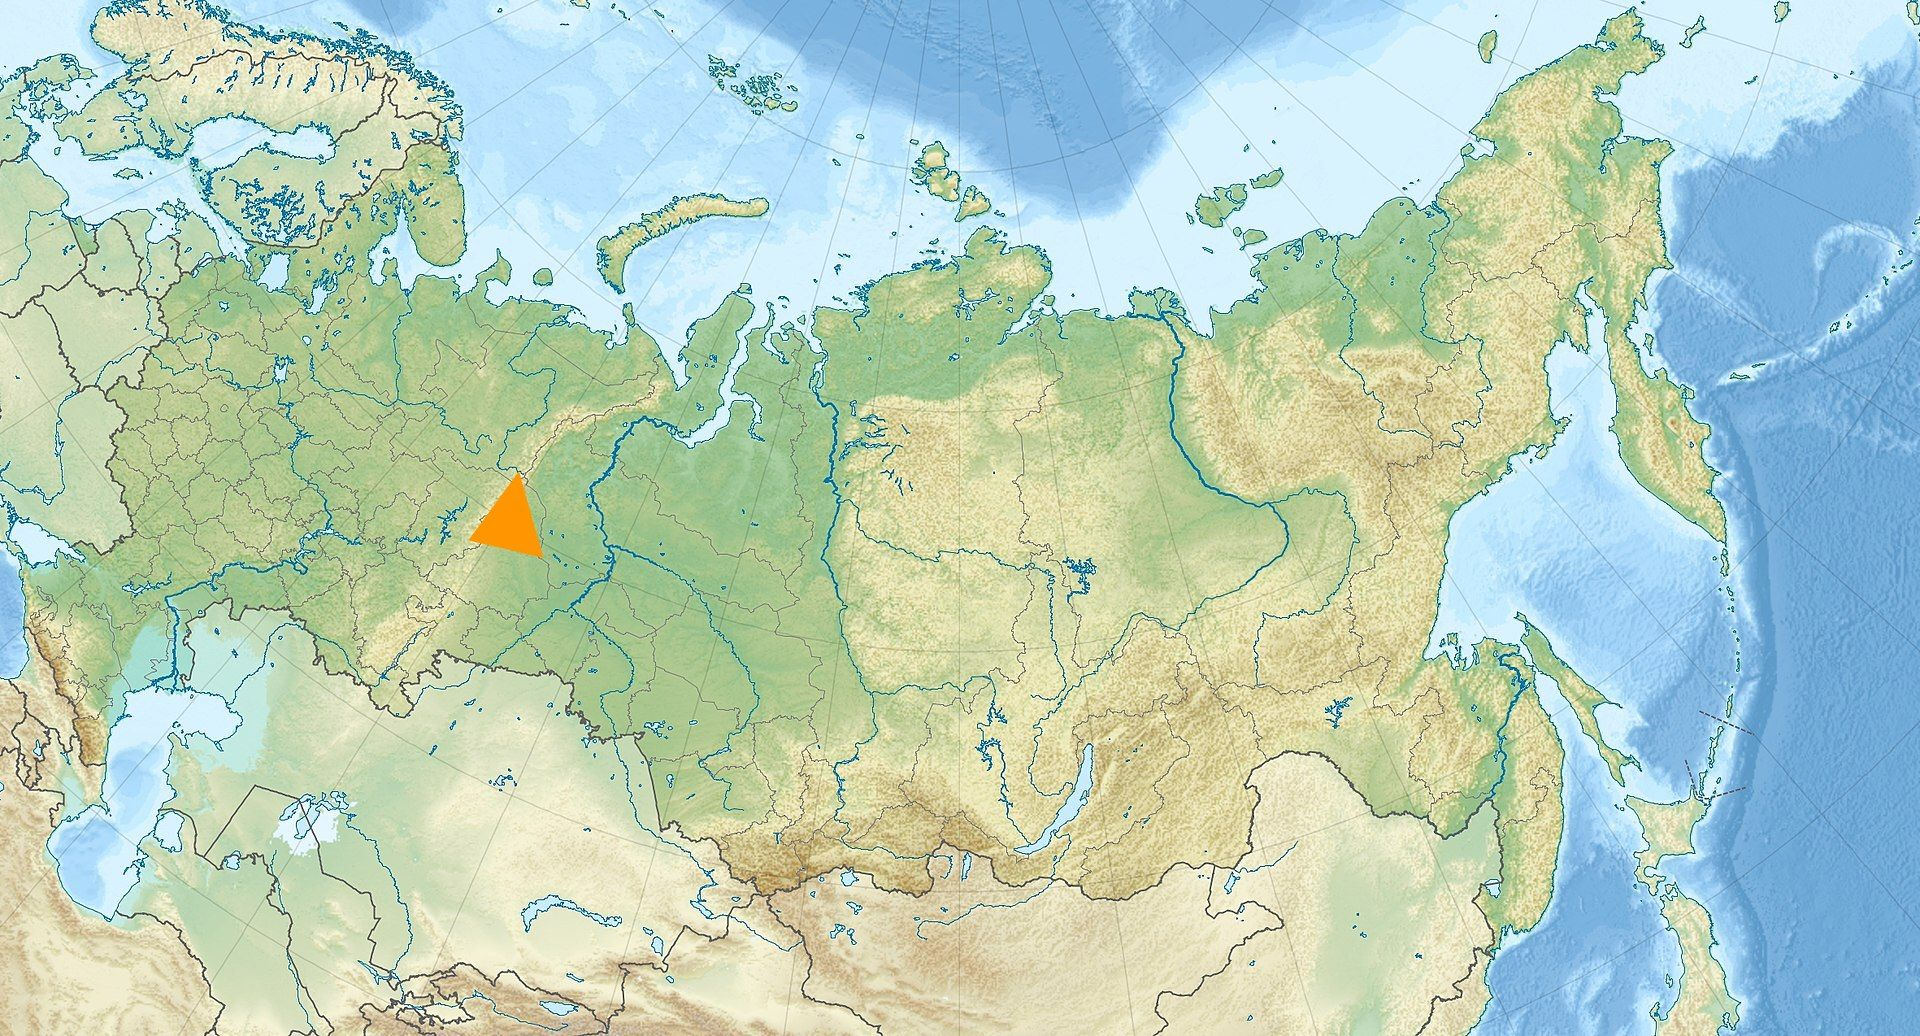 Ural Mountains The Urals Are A Mountain Range That Runs - Ural river on world map